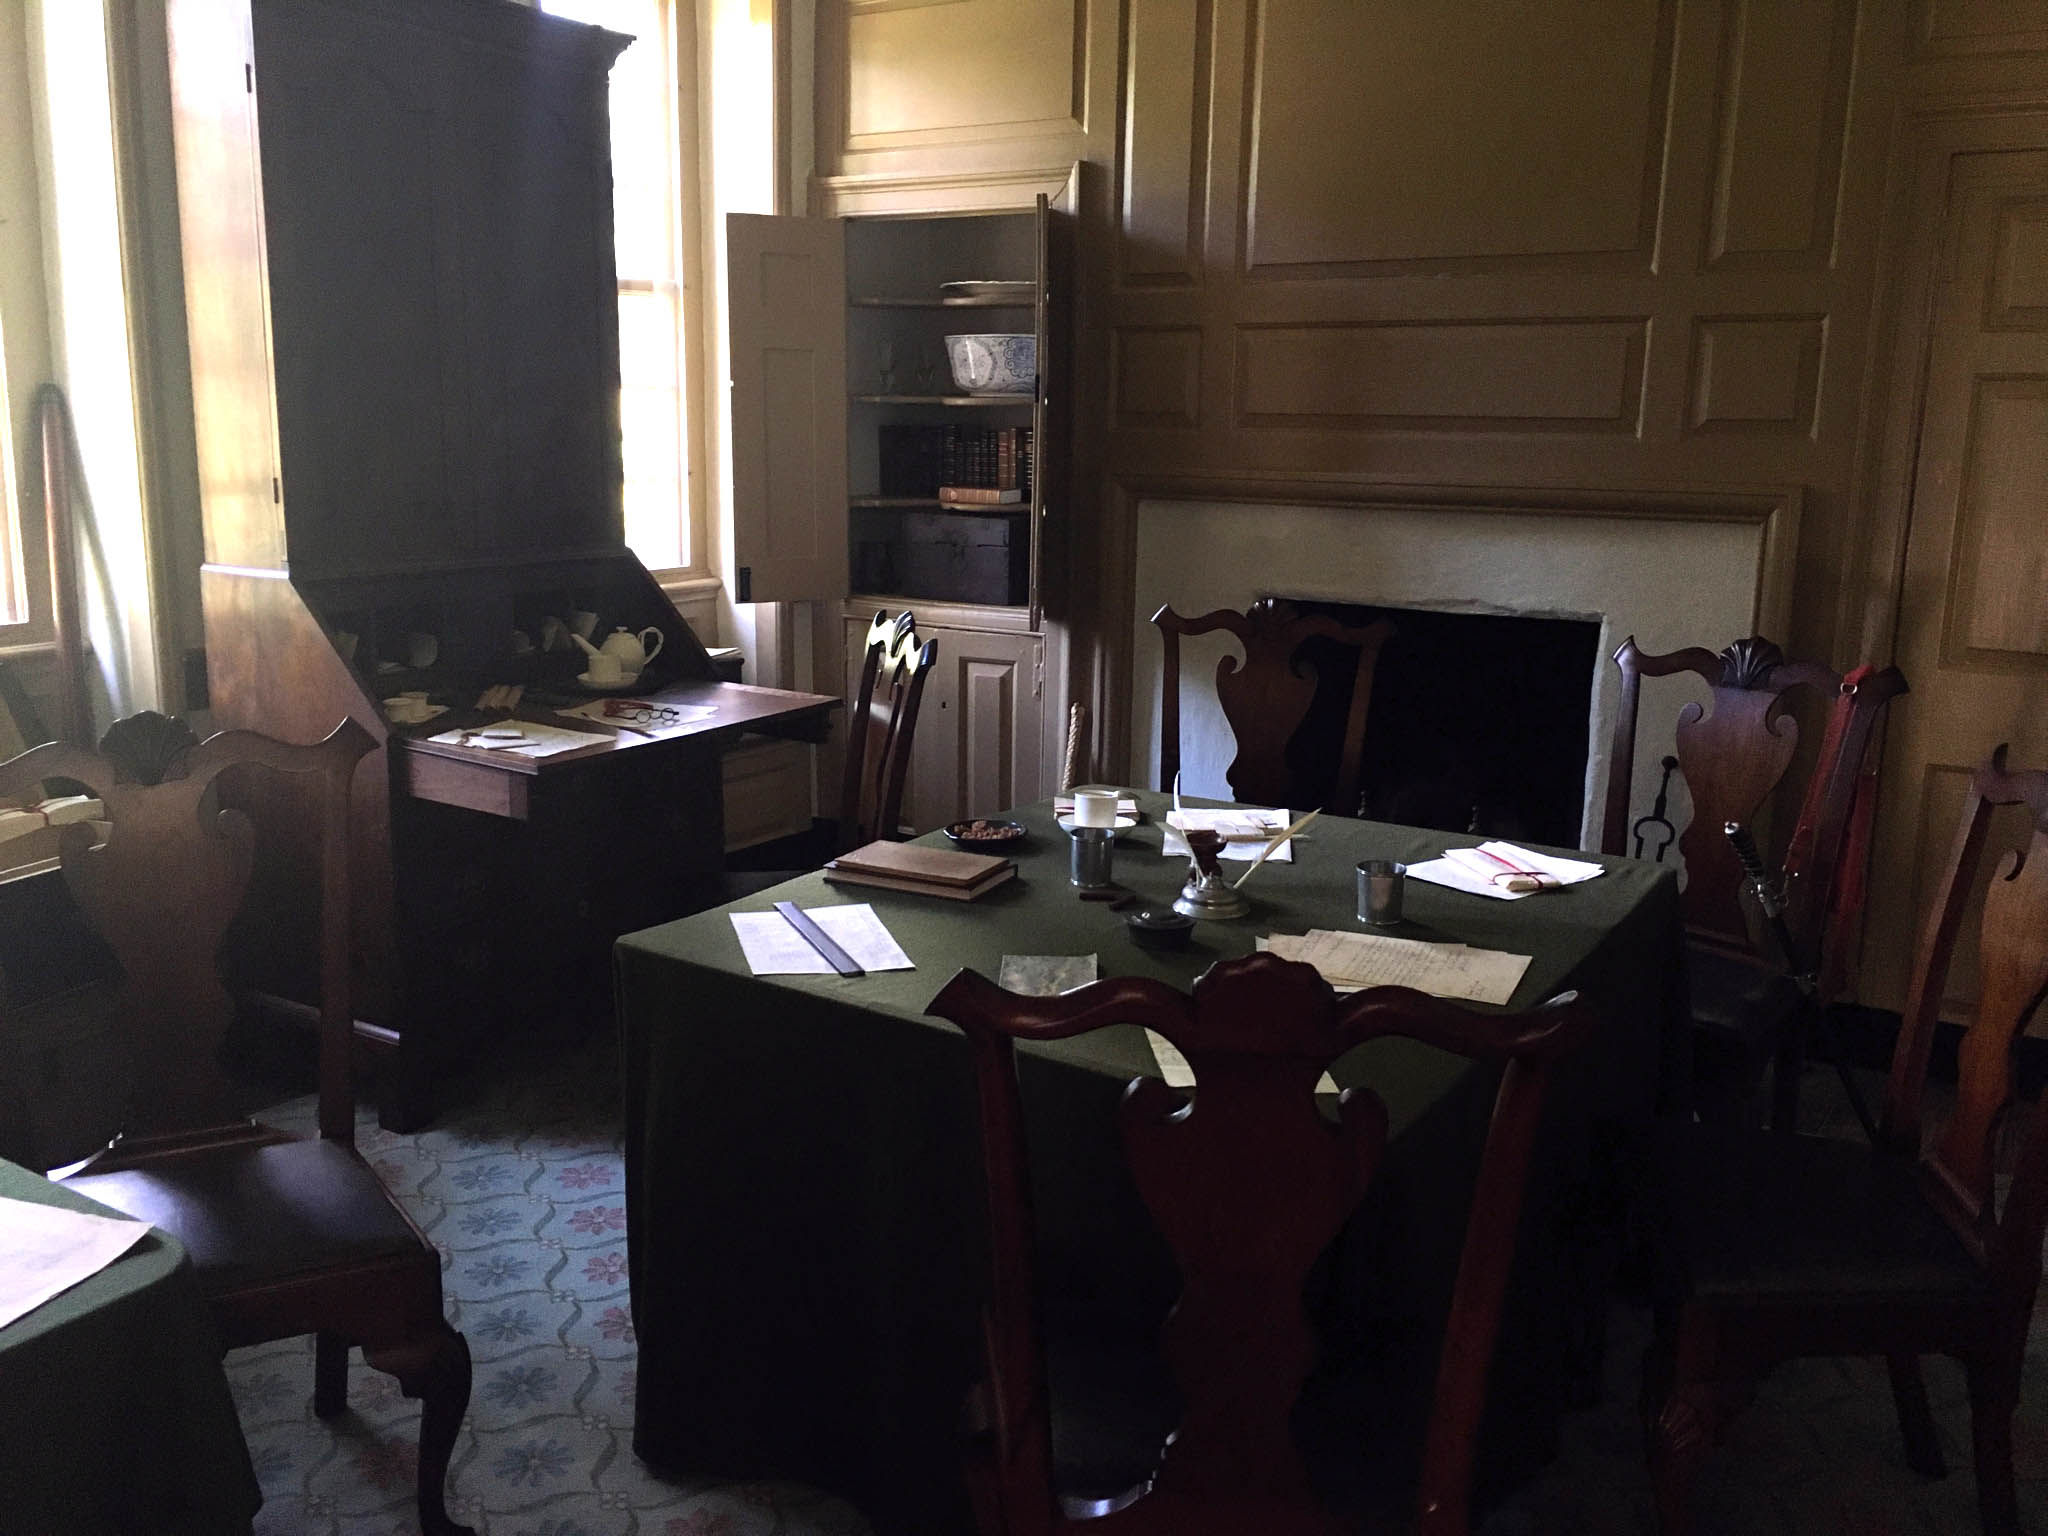 Washington's office at his headquarters.